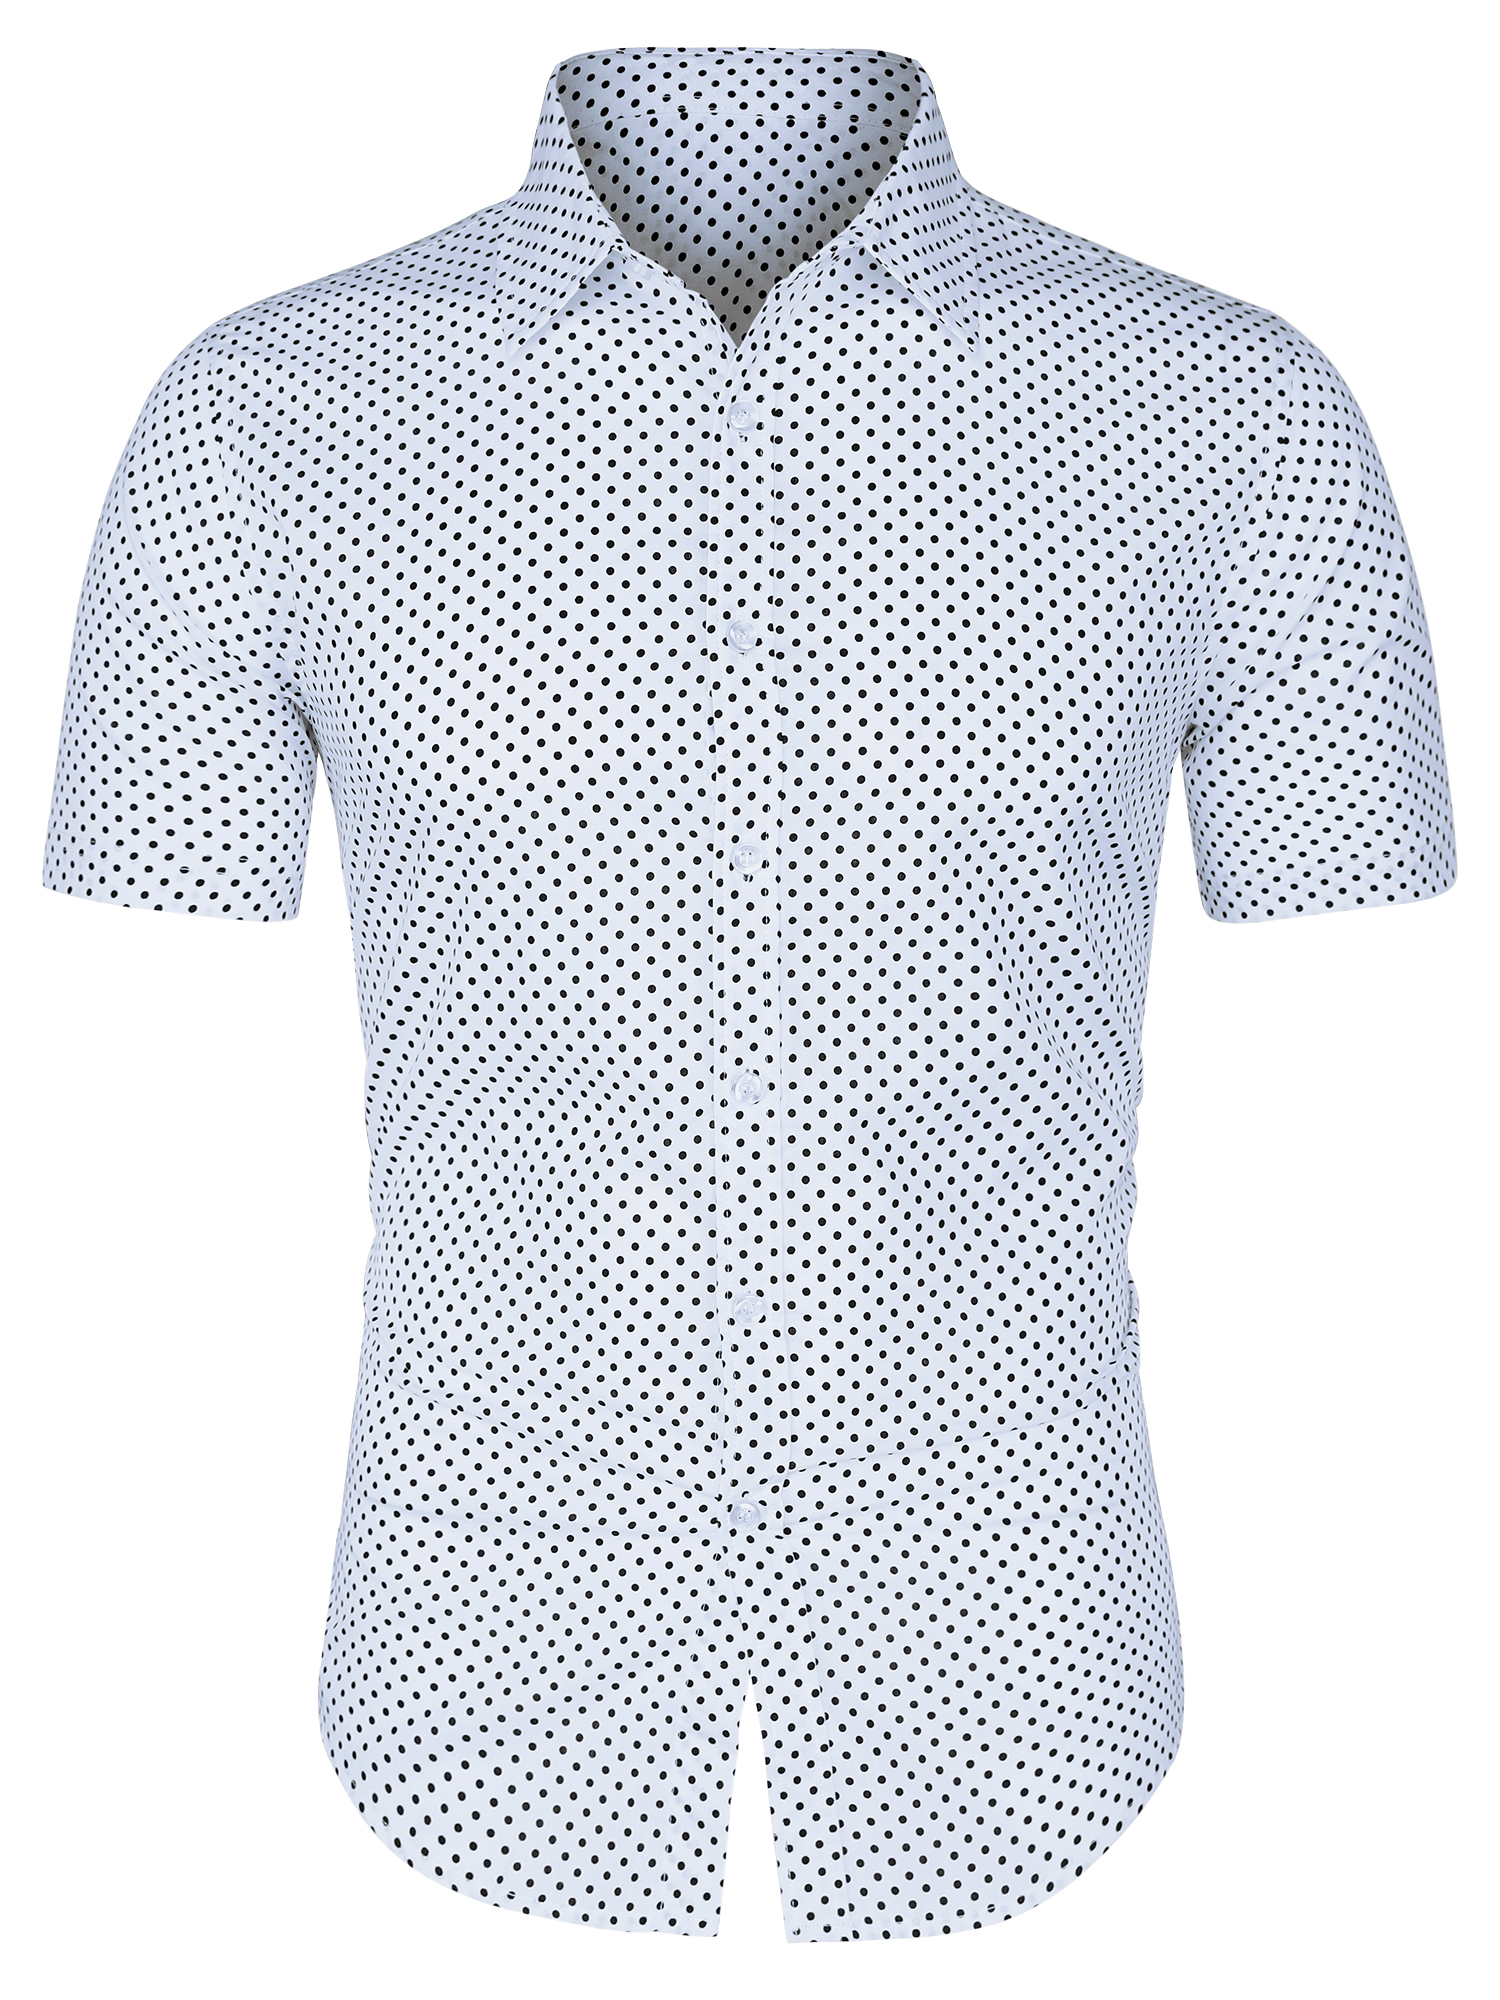 Mens Short Sleeves Single Breasted Cotton Dots Shirt White L